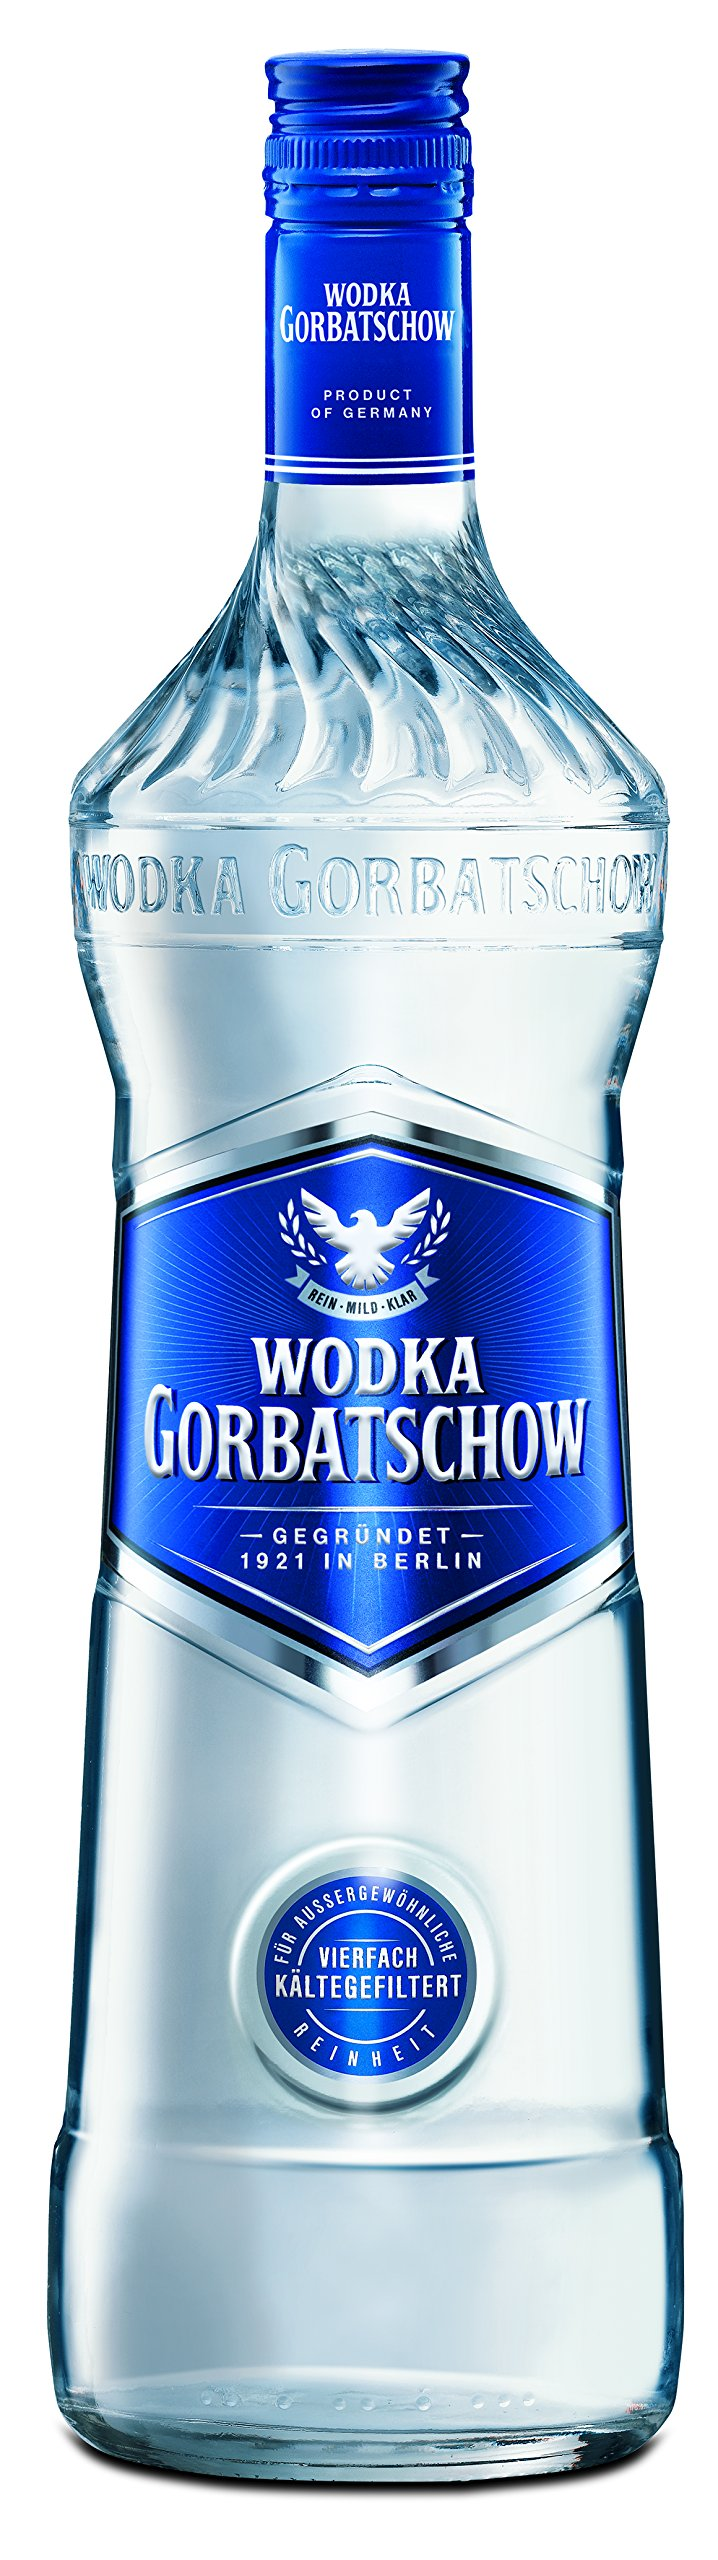 Gorbatschow-Wodka-375-Vol